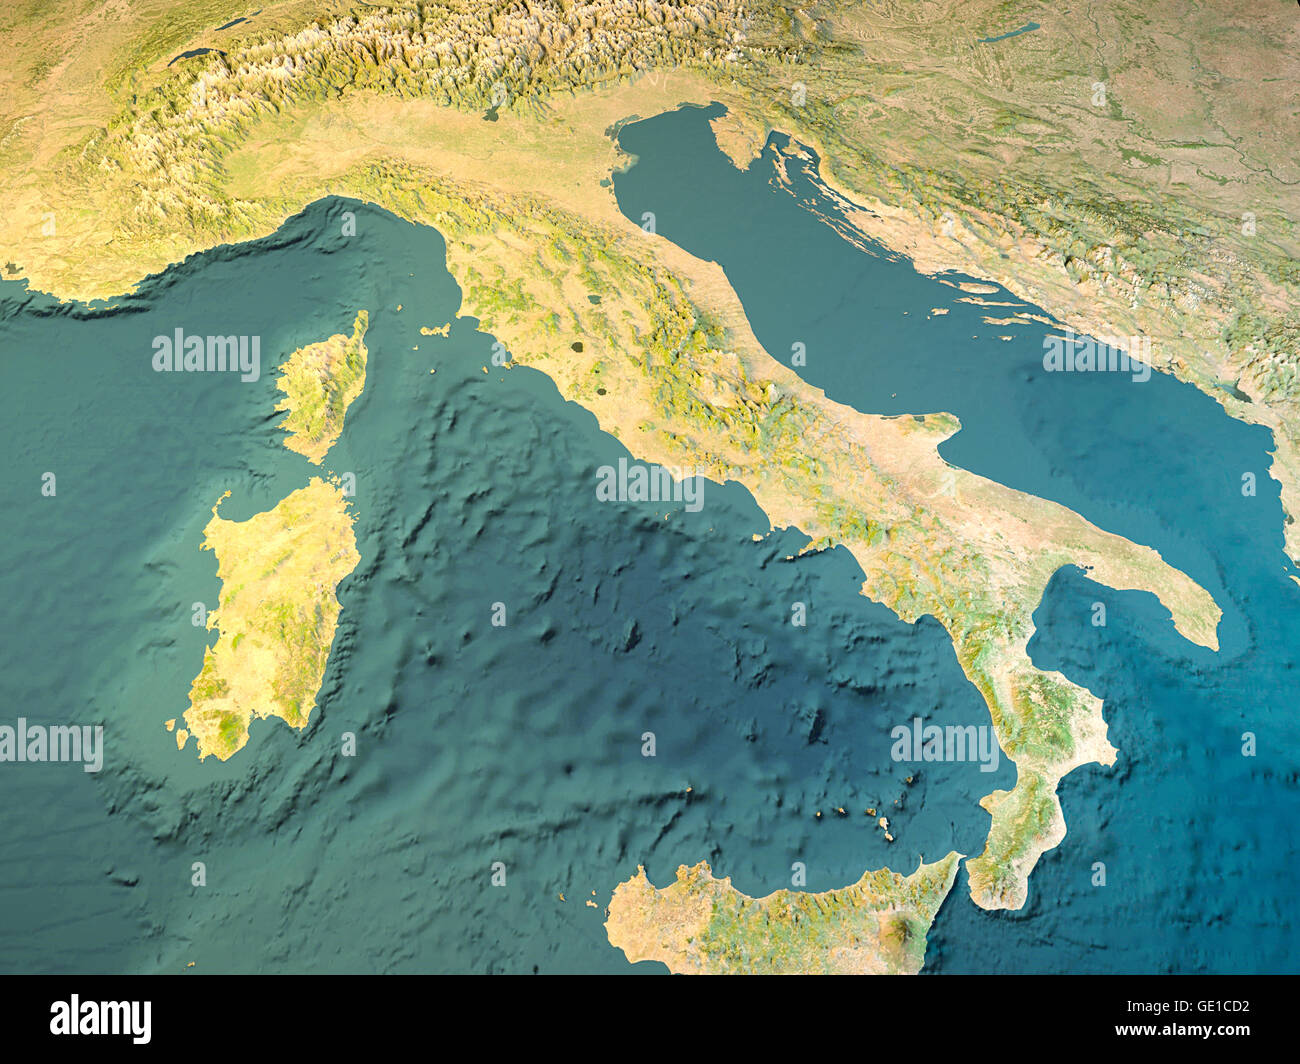 Italy  physical map  satellite view  map  3d rendering Stock Photo     Italy  physical map  satellite view  map  3d rendering